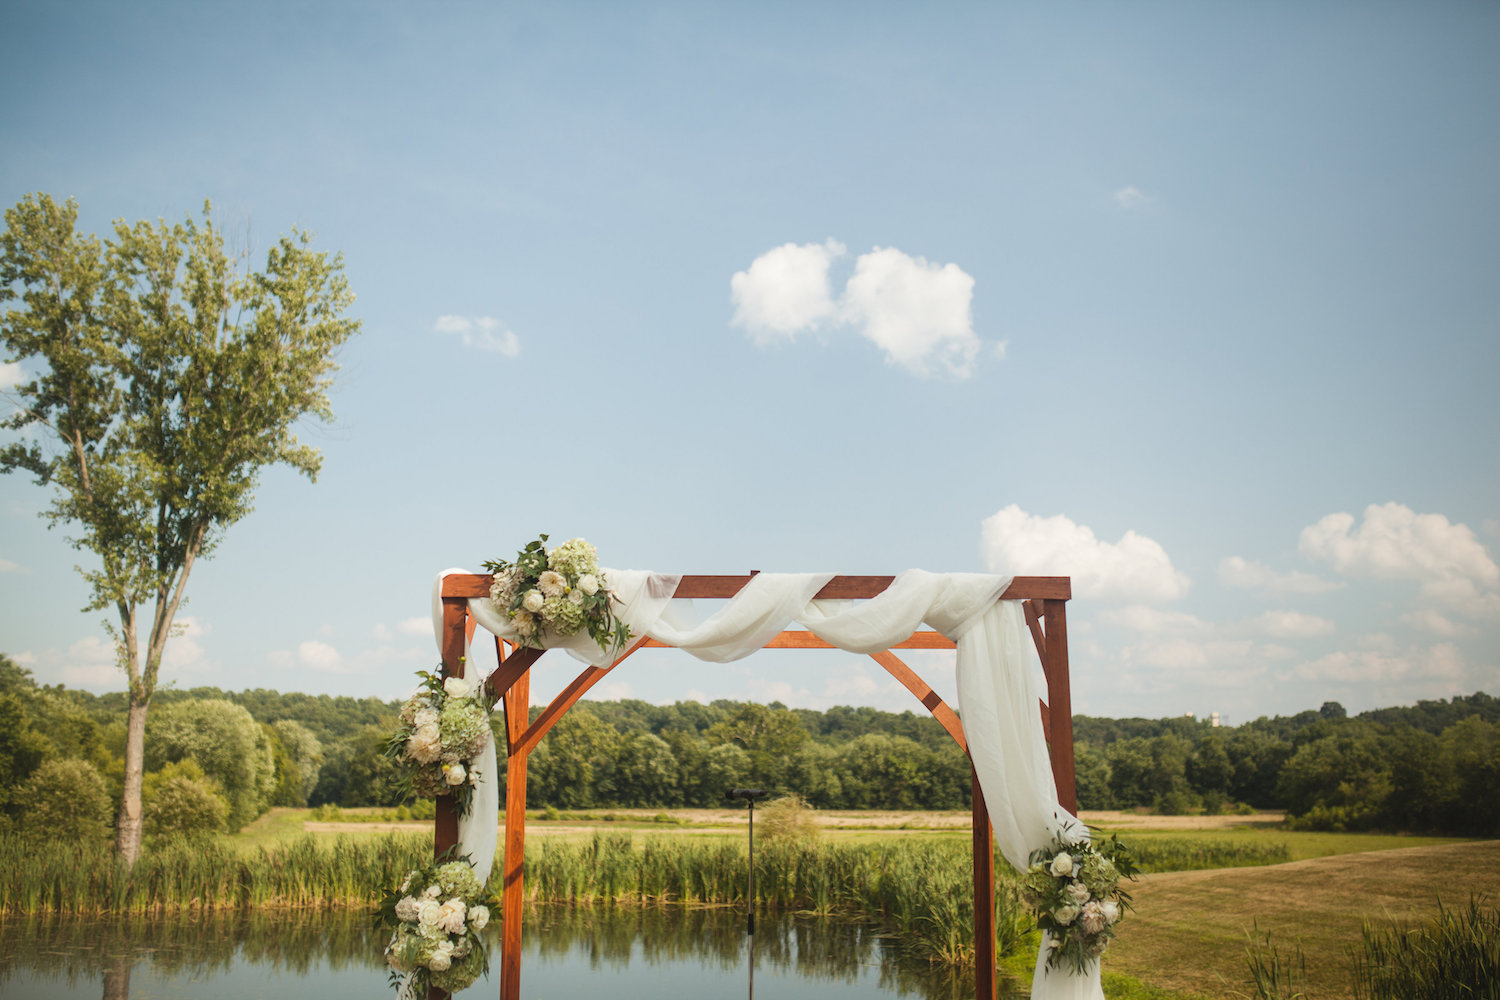 A friend of Danielle's father built the Chuppah that featured cascading flower bundles. Photography by Carly Romeo + Co.